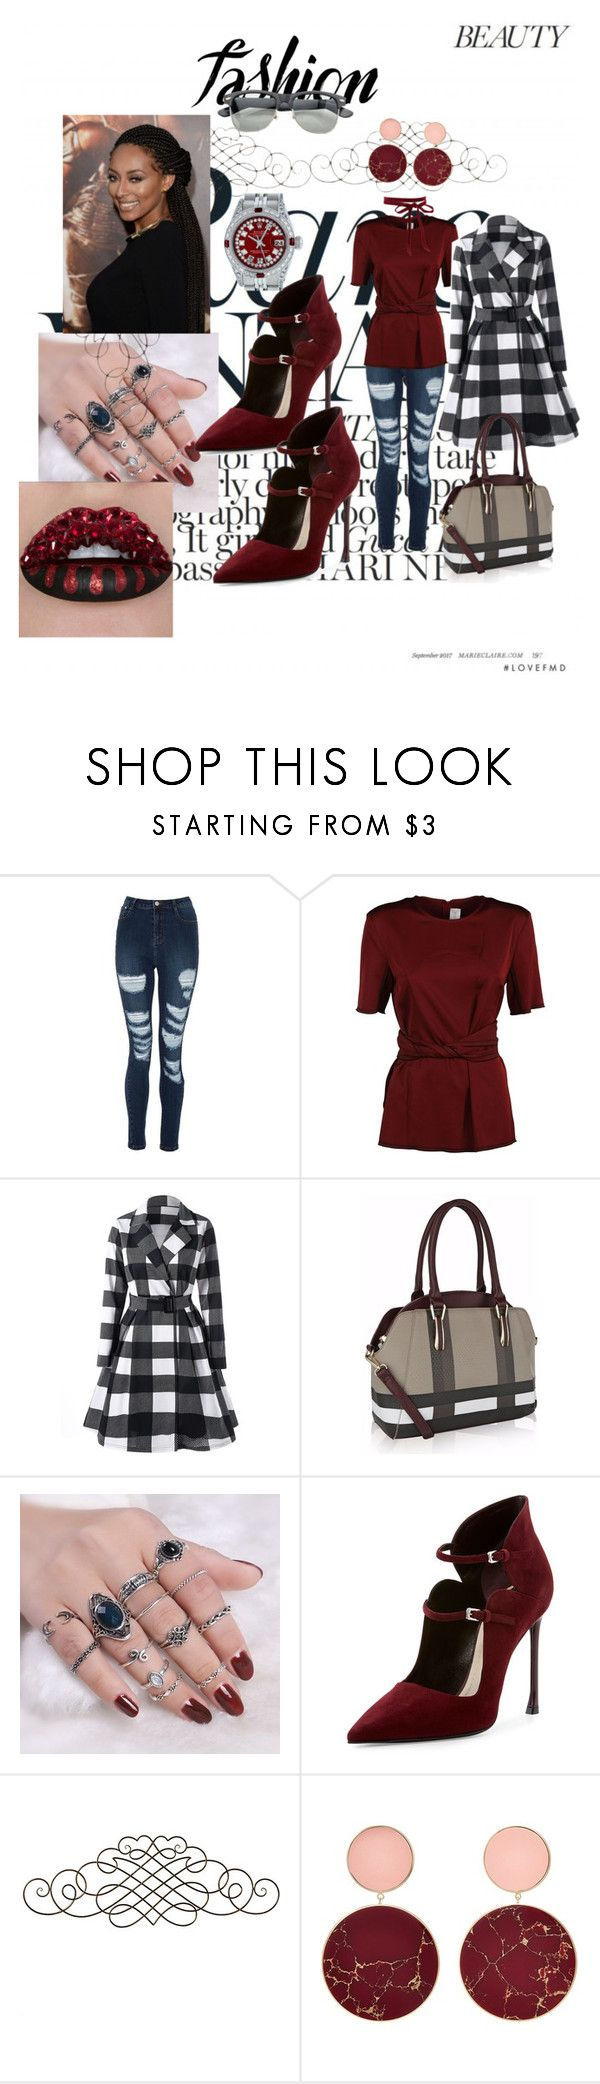 """plaid fashion"" by delpilardiazfiorela ❤ liked on Polyvore featuring Victoria Beckham, MKF Collection, Christian Dior, Midwest of Cannon Falls, Diesel, Joanna Laura Constantine, Rolex, red, plaid and wine"